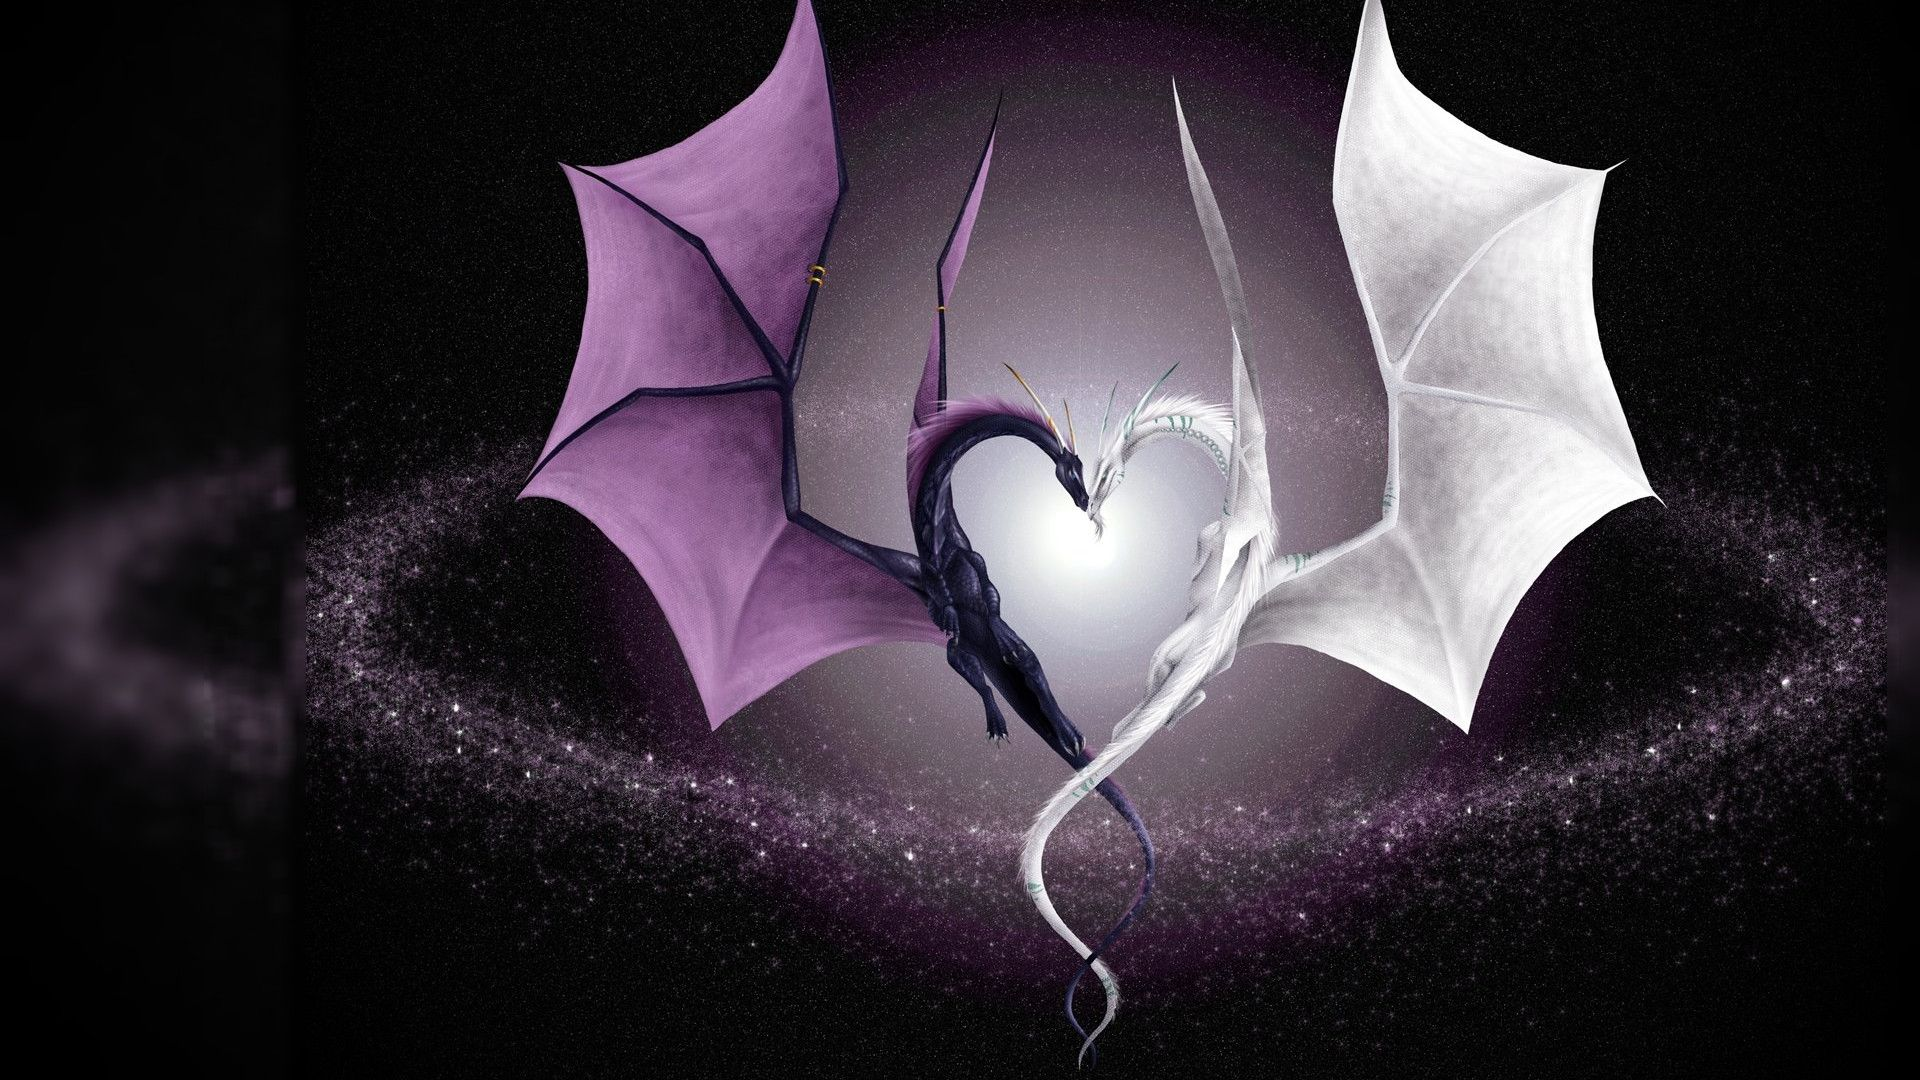 Dragon Love Wallpapers Top Free Dragon Love Backgrounds